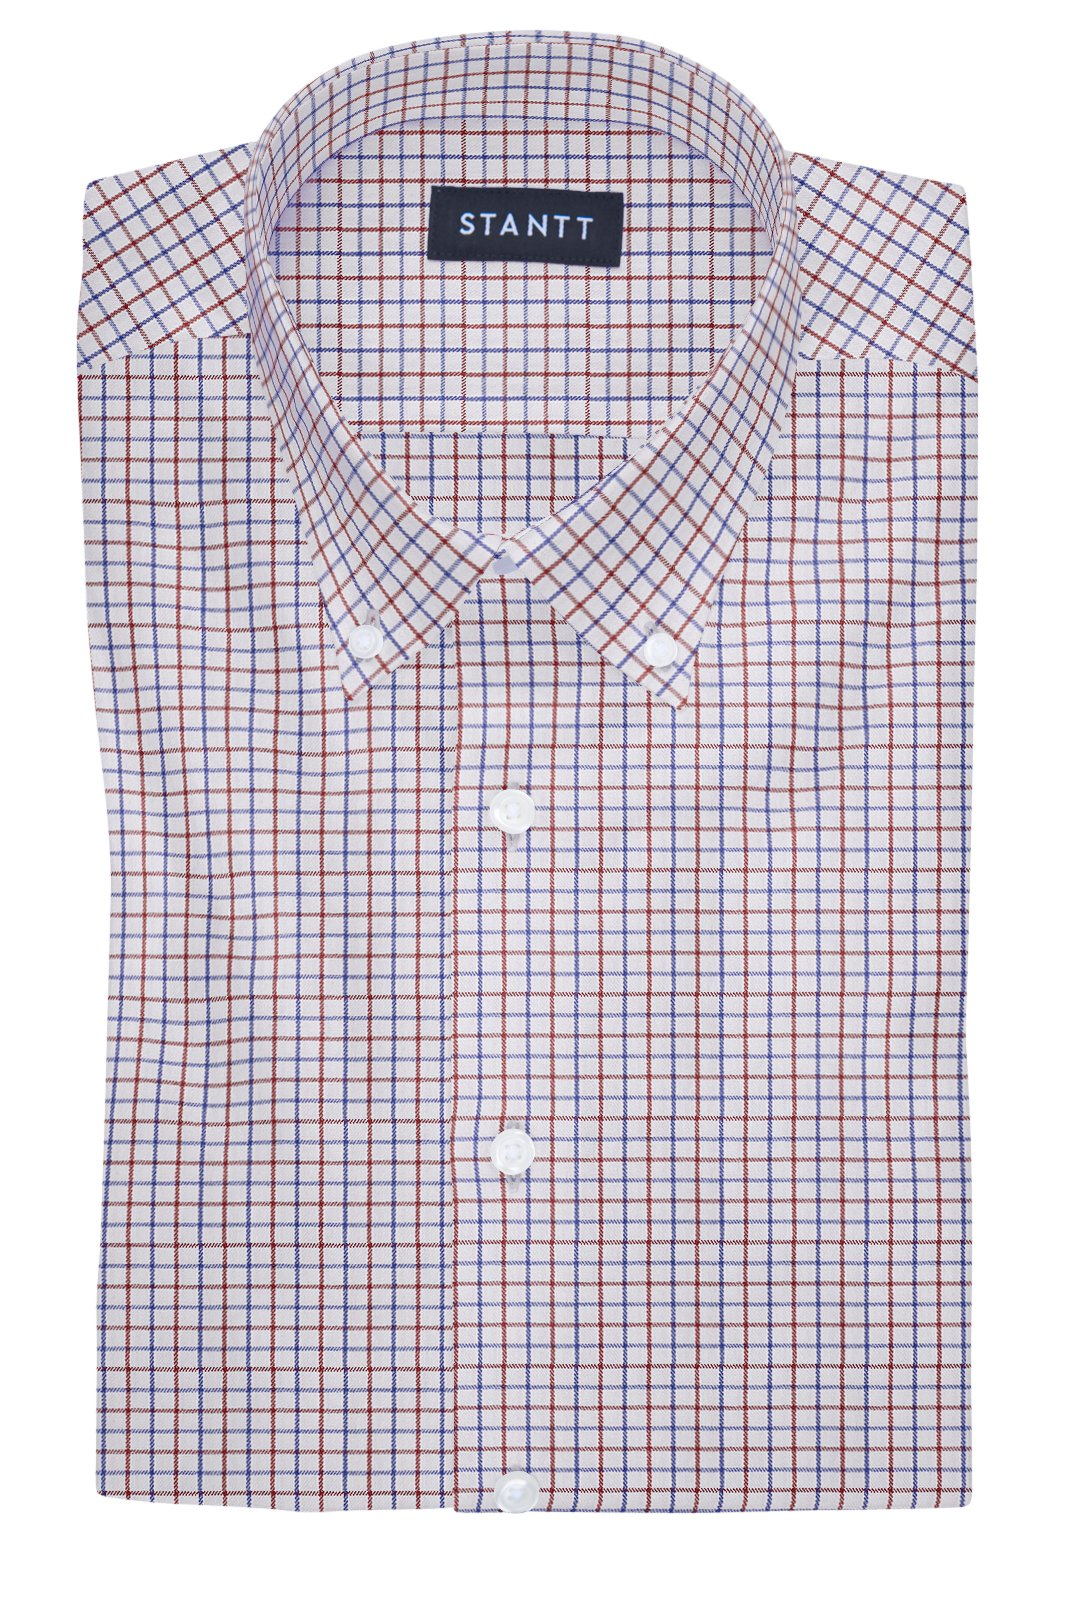 Performance Red and Blue Grid Check: Button-Down Collar, Barrel Cuff